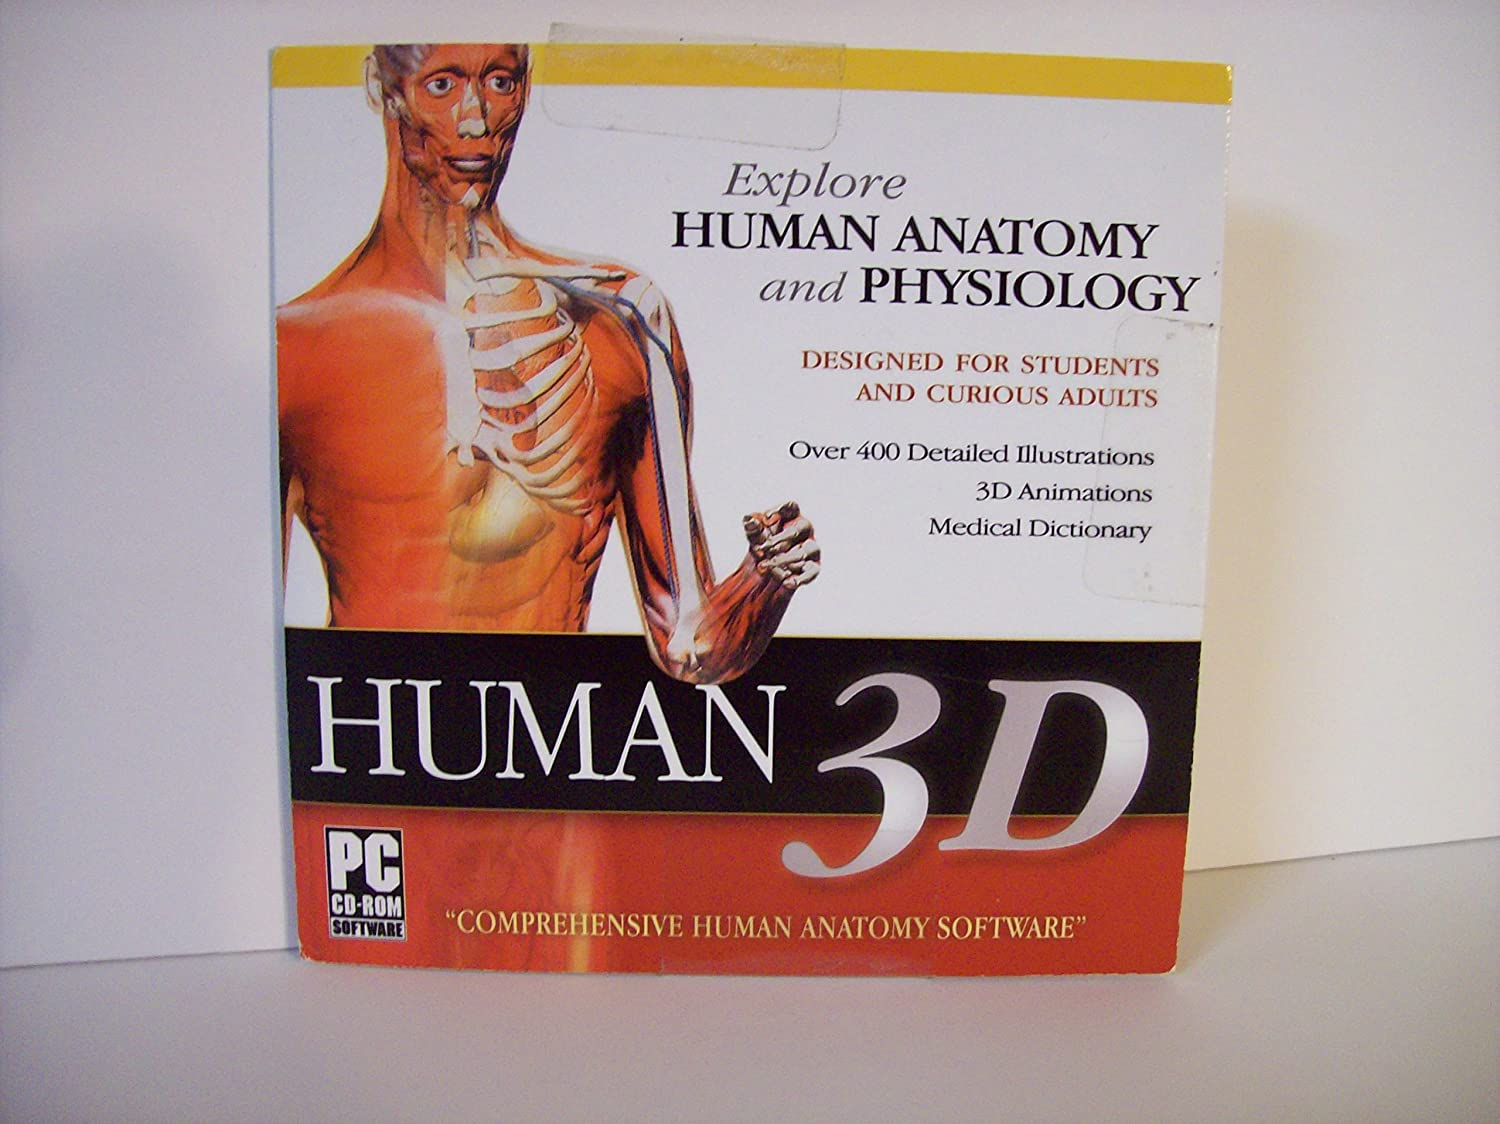 Amazon.com: Human 3D Explore Human Anatomy and Physiology CD-ROM